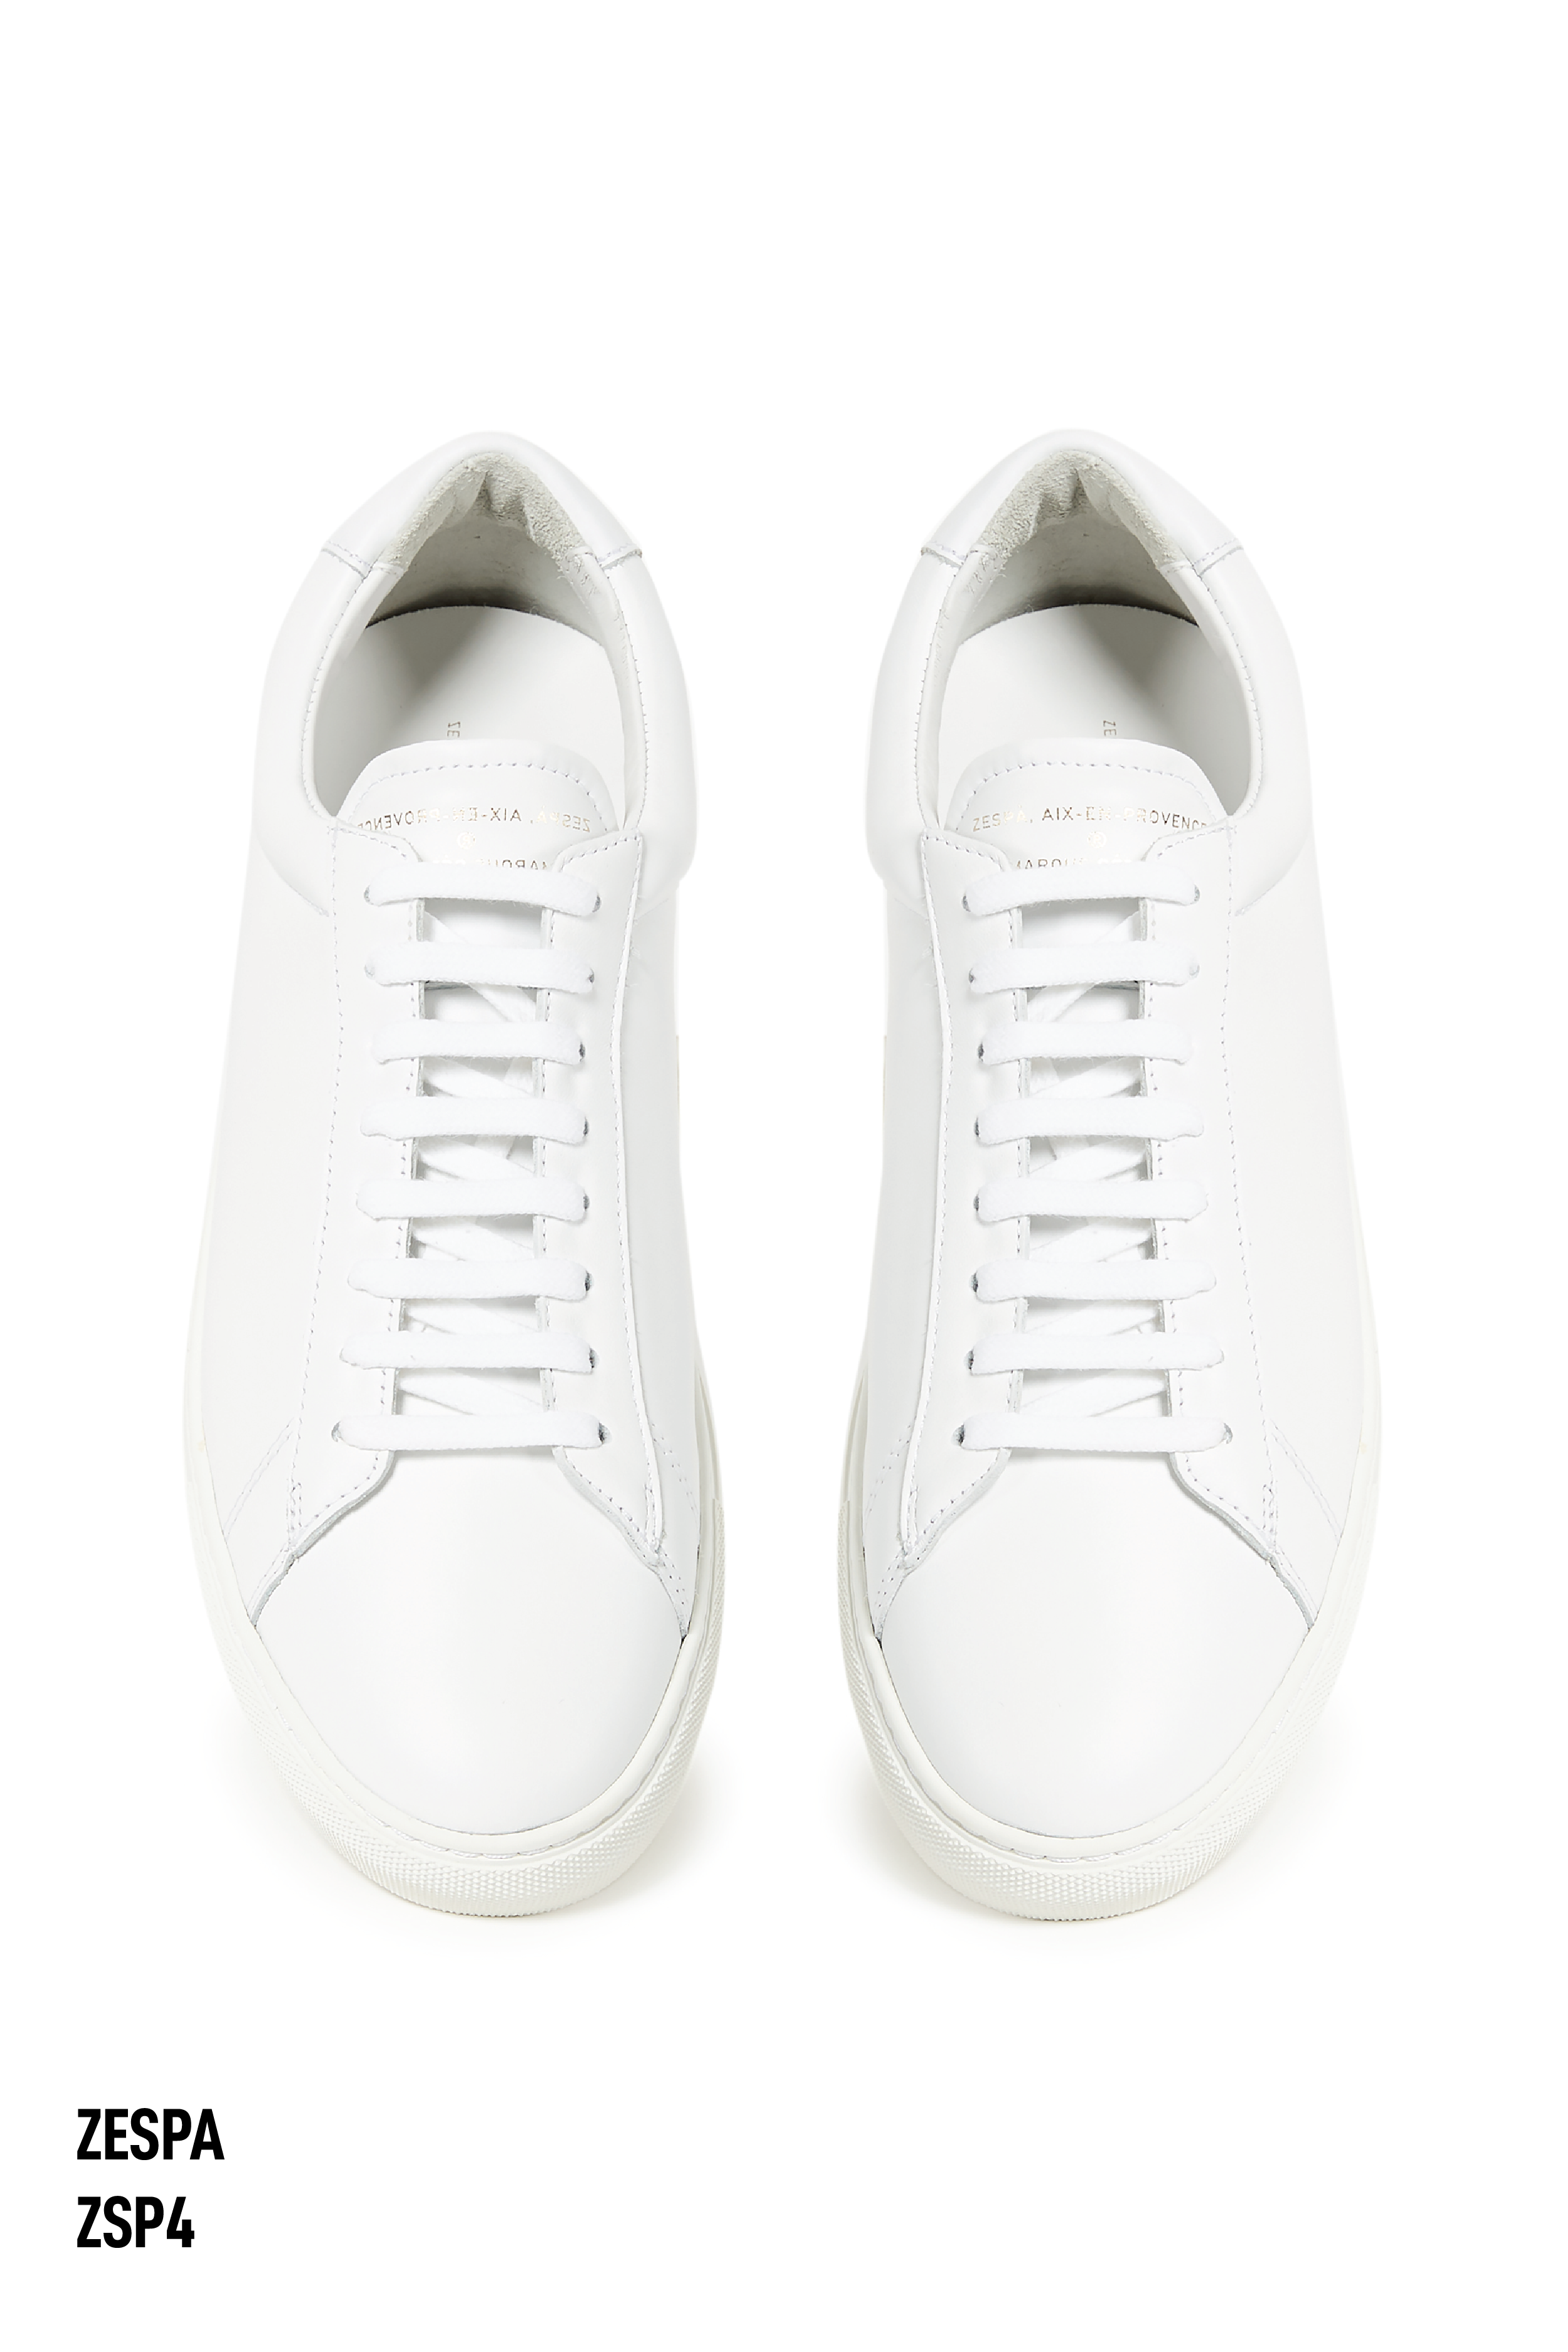 Best White Sneakers for Men for Every